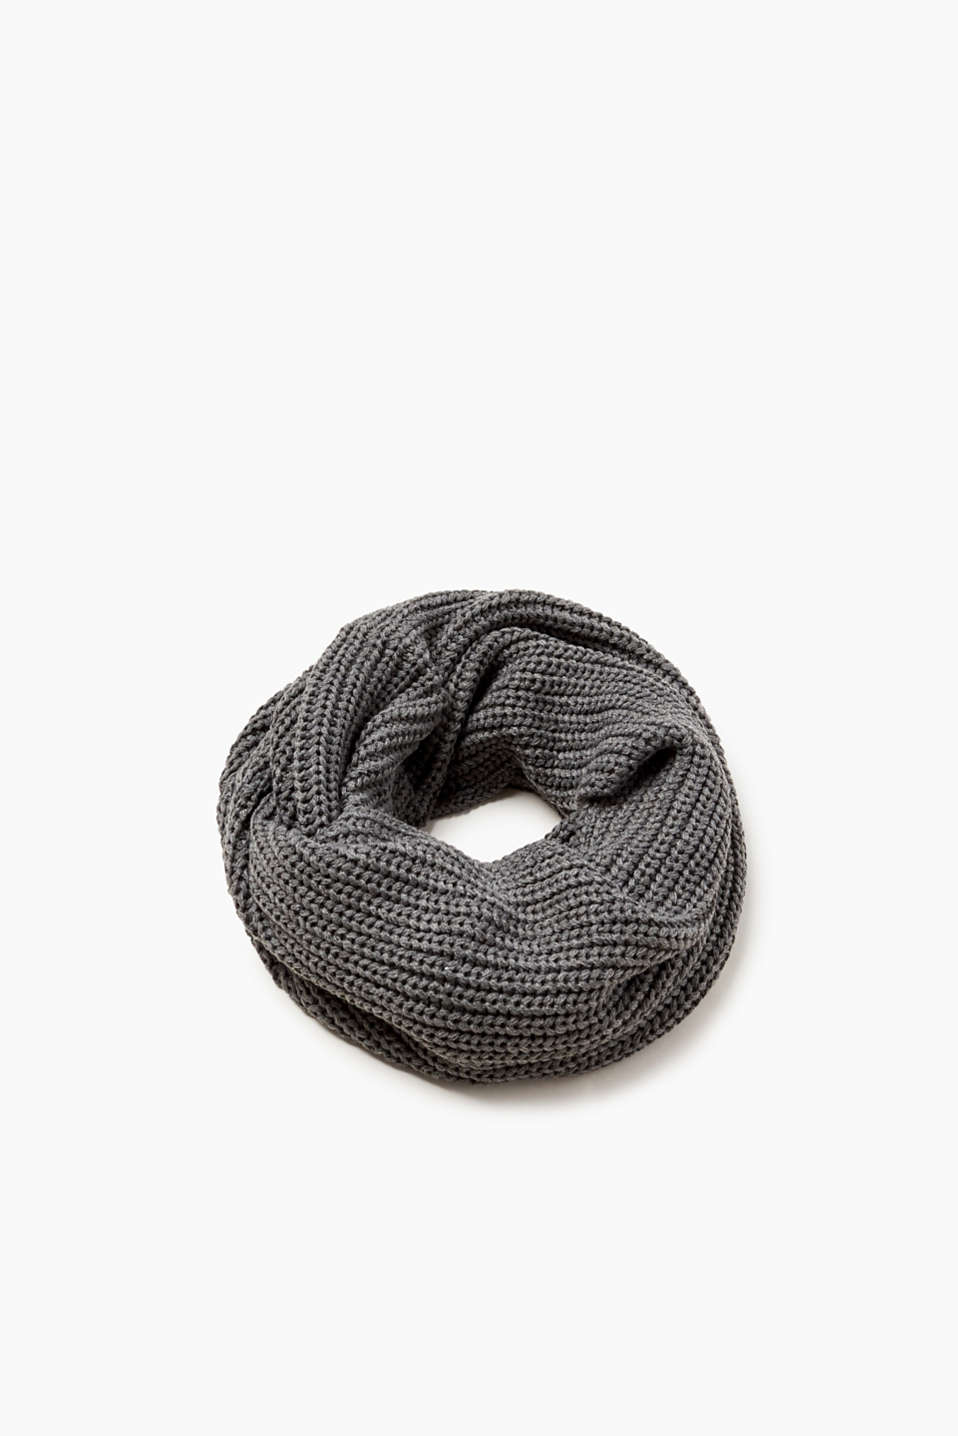 We love timeless knitwear! This snood in muted colours will complete your winter look.